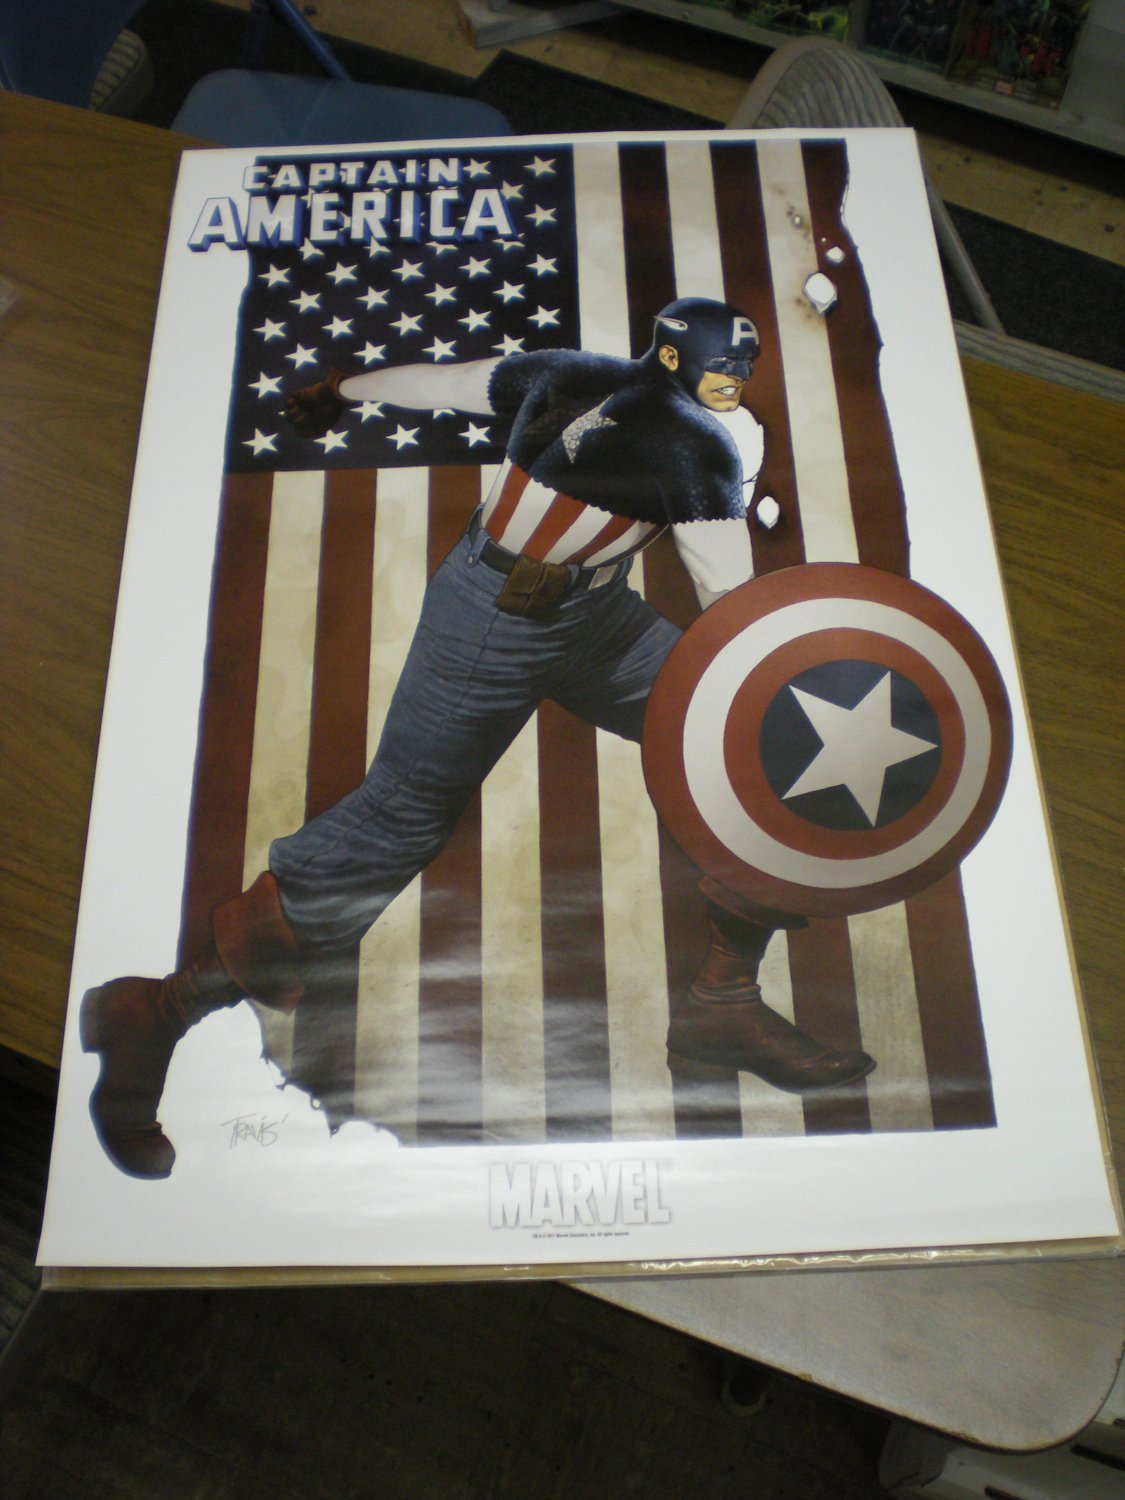 2011 Captain America Poster by Travis Charest 24 x 36 inches BRAND NEW